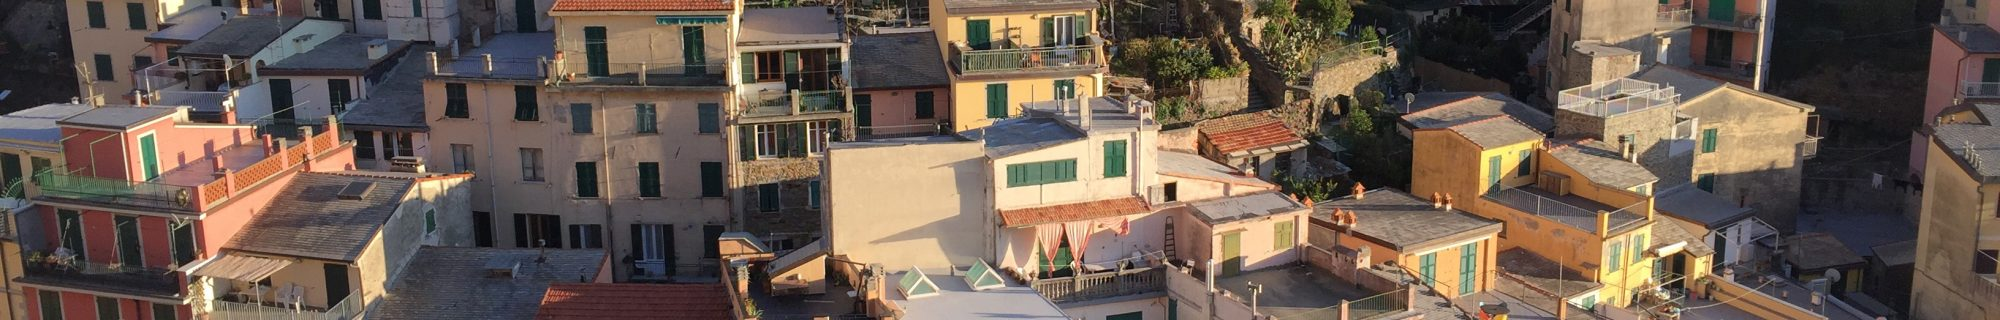 Cinque Terre Insider